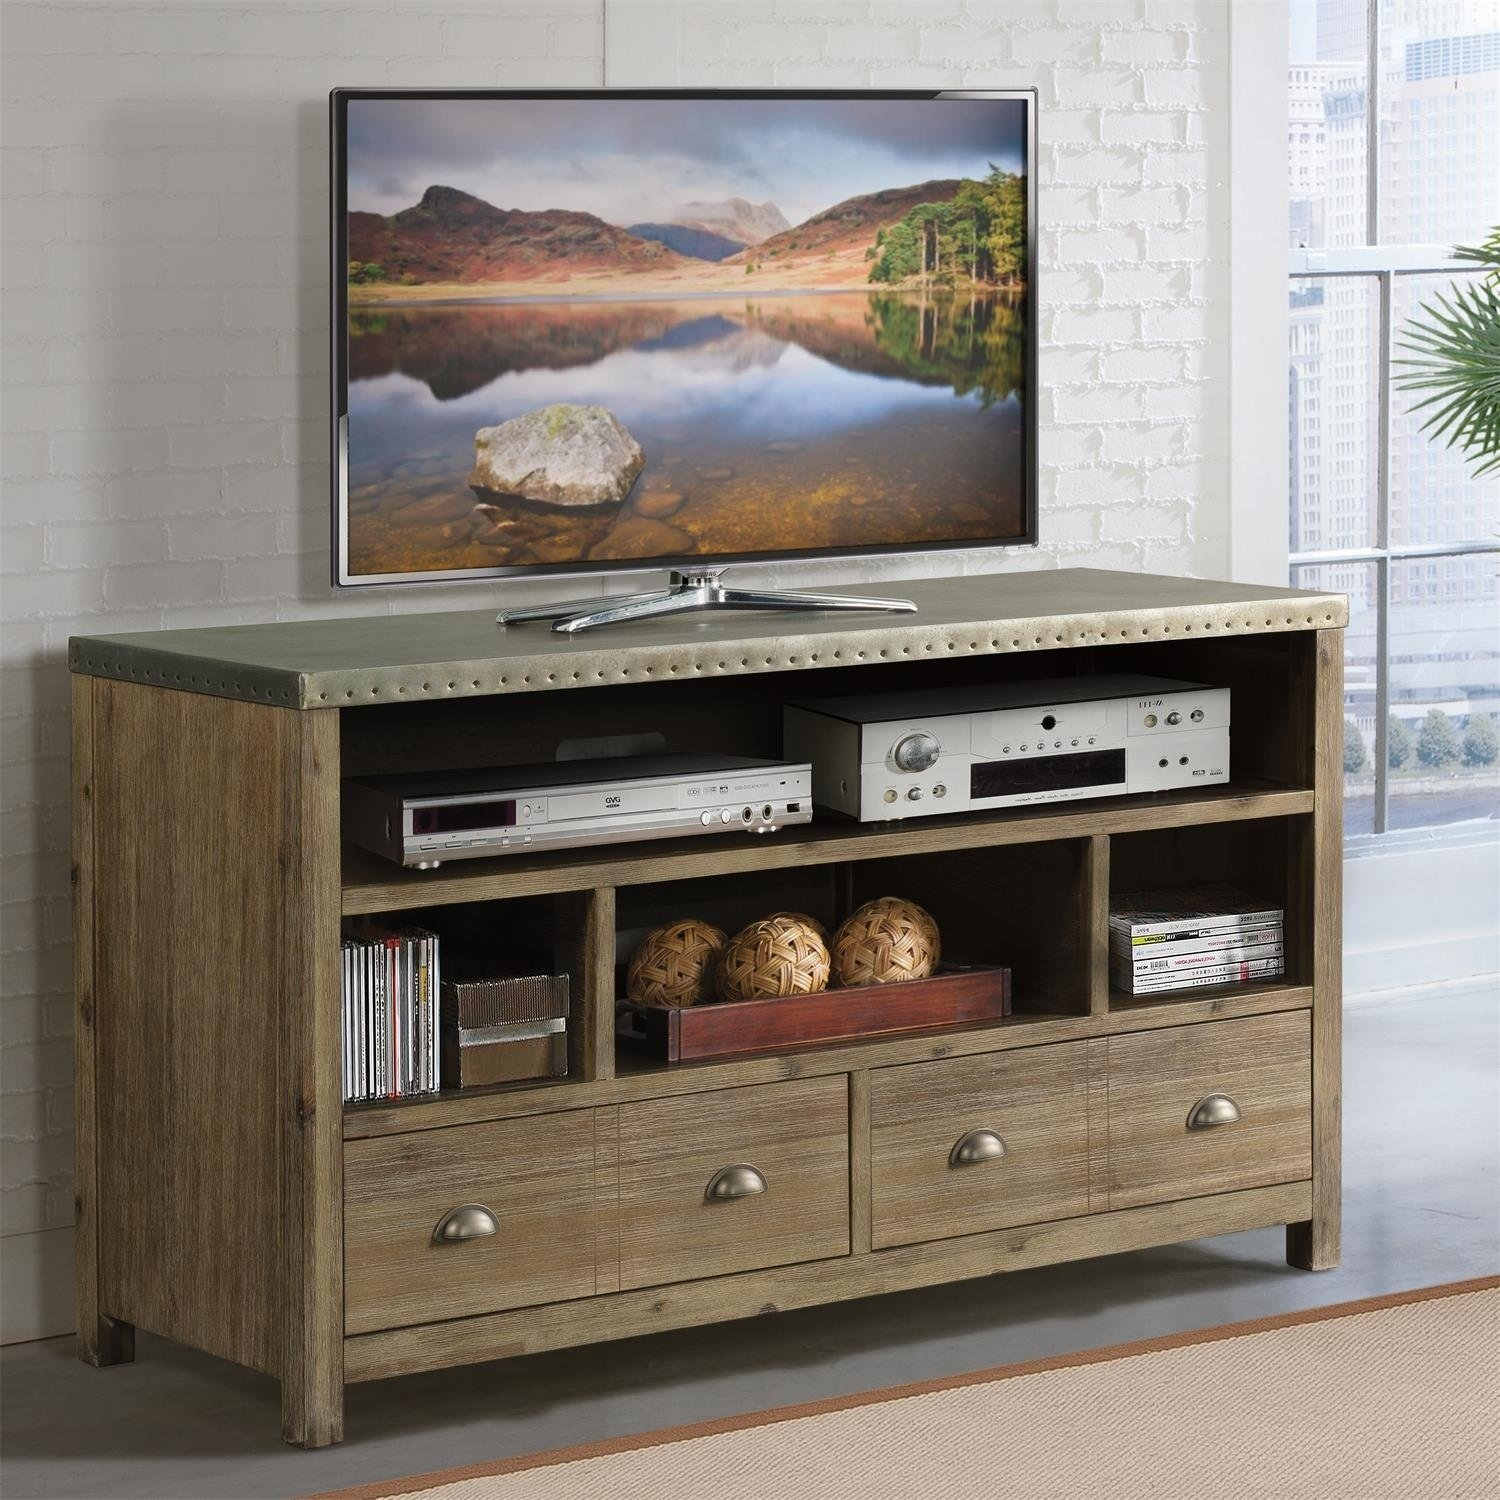 Shop Liam 54-Inch Tv Console - 54 Inches - Free Shipping Today throughout Canyon 54 Inch Tv Stands (Image 24 of 30)